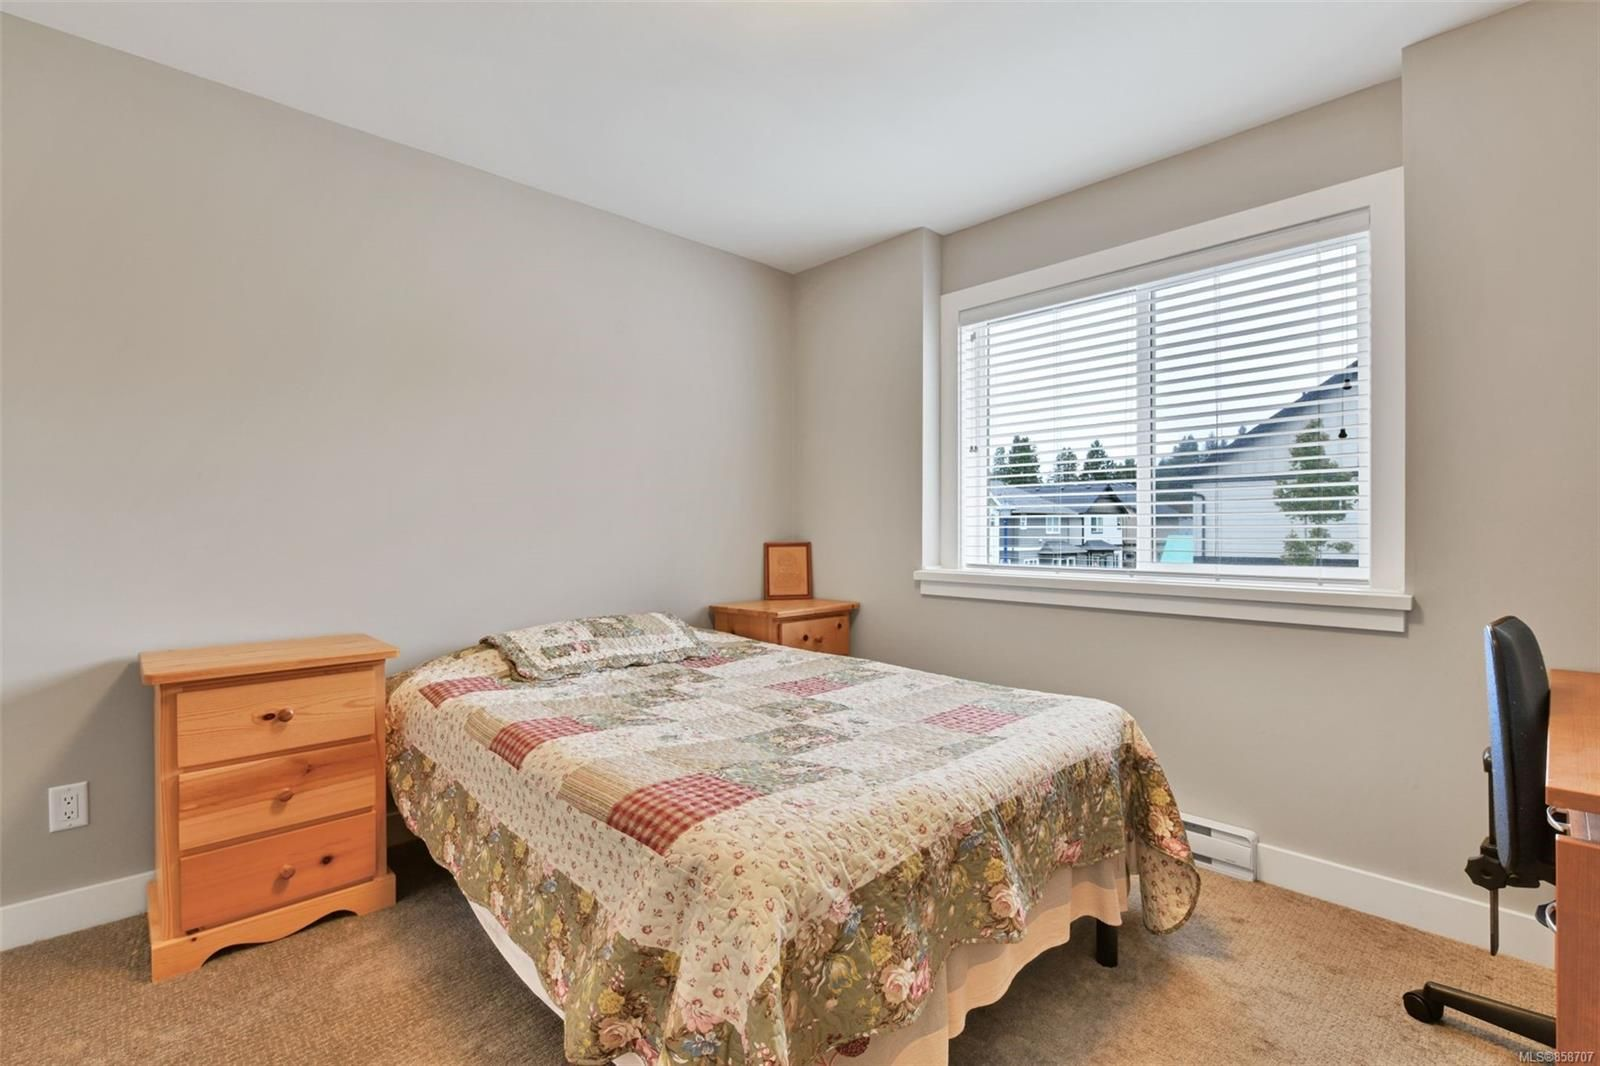 Photo 18: Photos: 1262 McLeod Pl in : La Happy Valley House for sale (Langford)  : MLS®# 858707